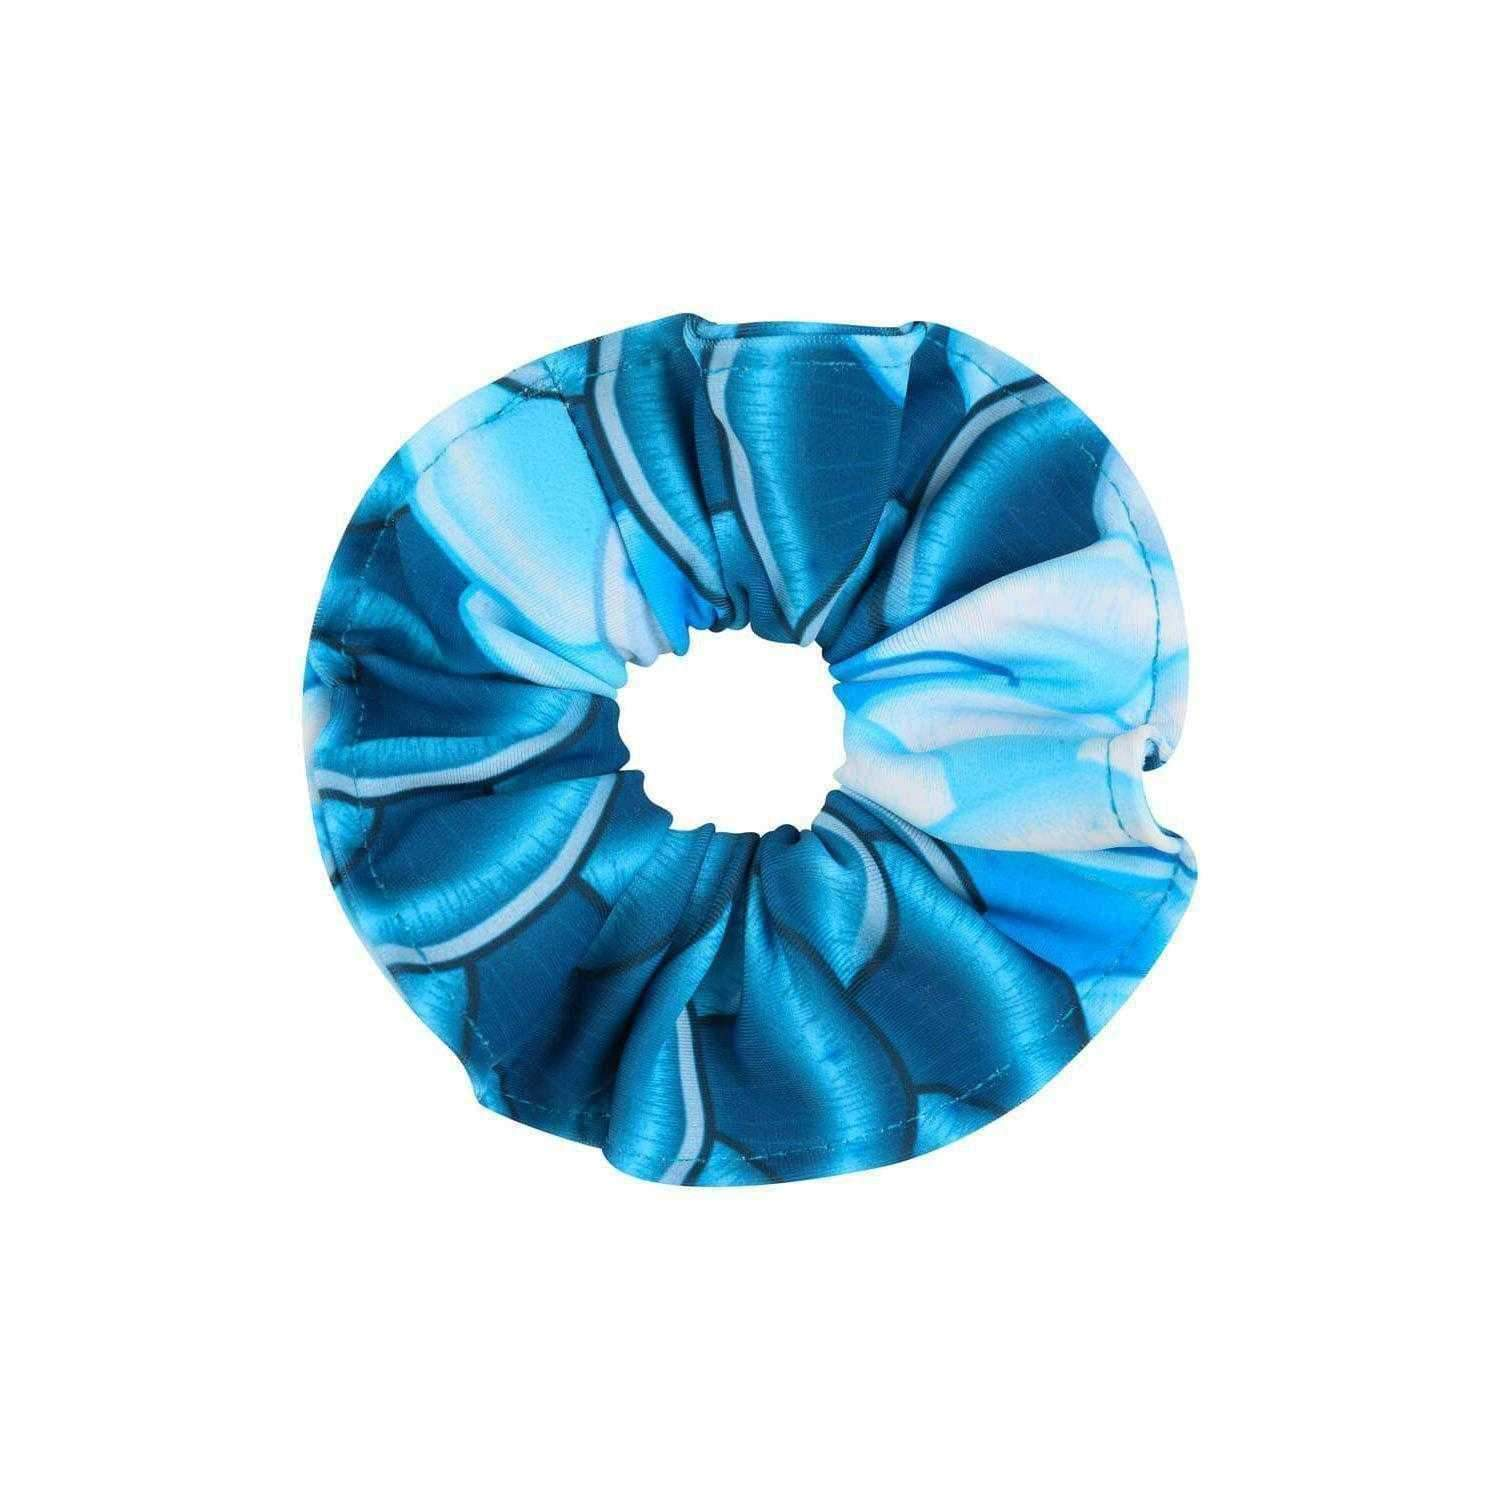 Kensington Bluebell Hair Scrunchie - Sereias Cauda Reino Unido